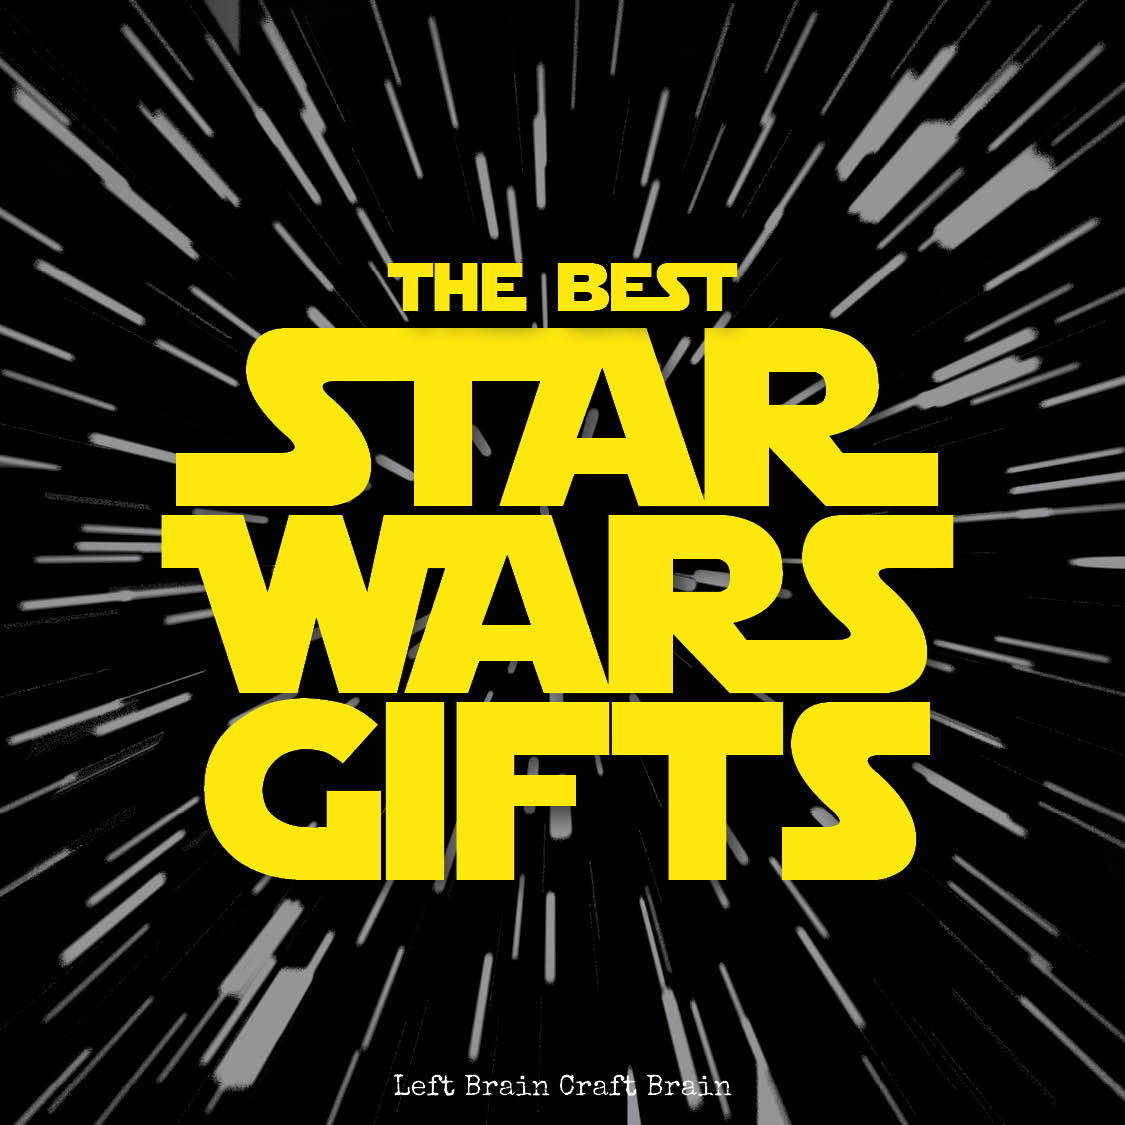 The Best Star Wars Gifts 1000x1000 v2